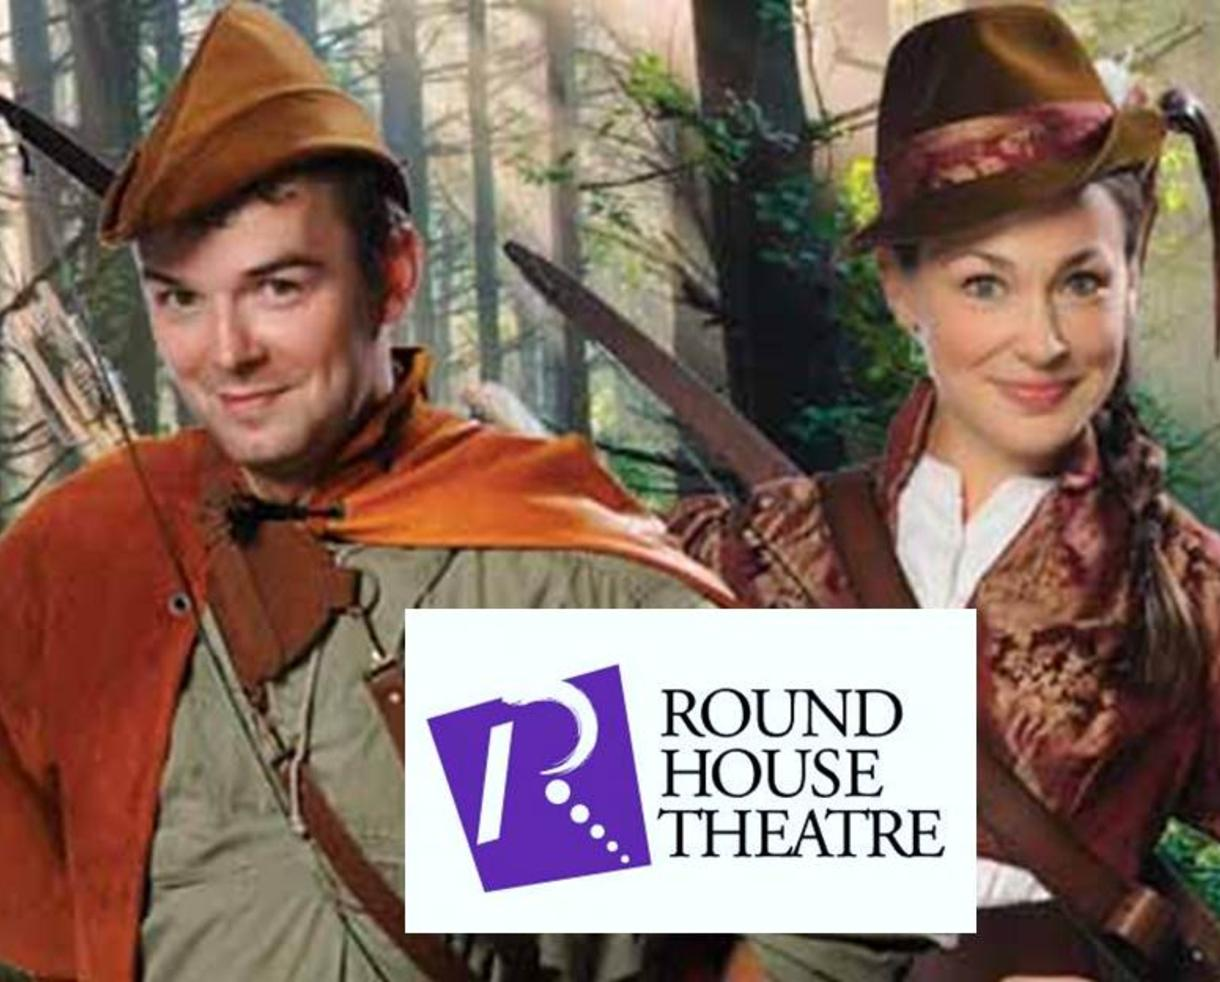 $12.50 for Round House Theatre's YOUNG ROBIN HOOD - Bethesda - NEW DATES!! (Up to 77% Off!)